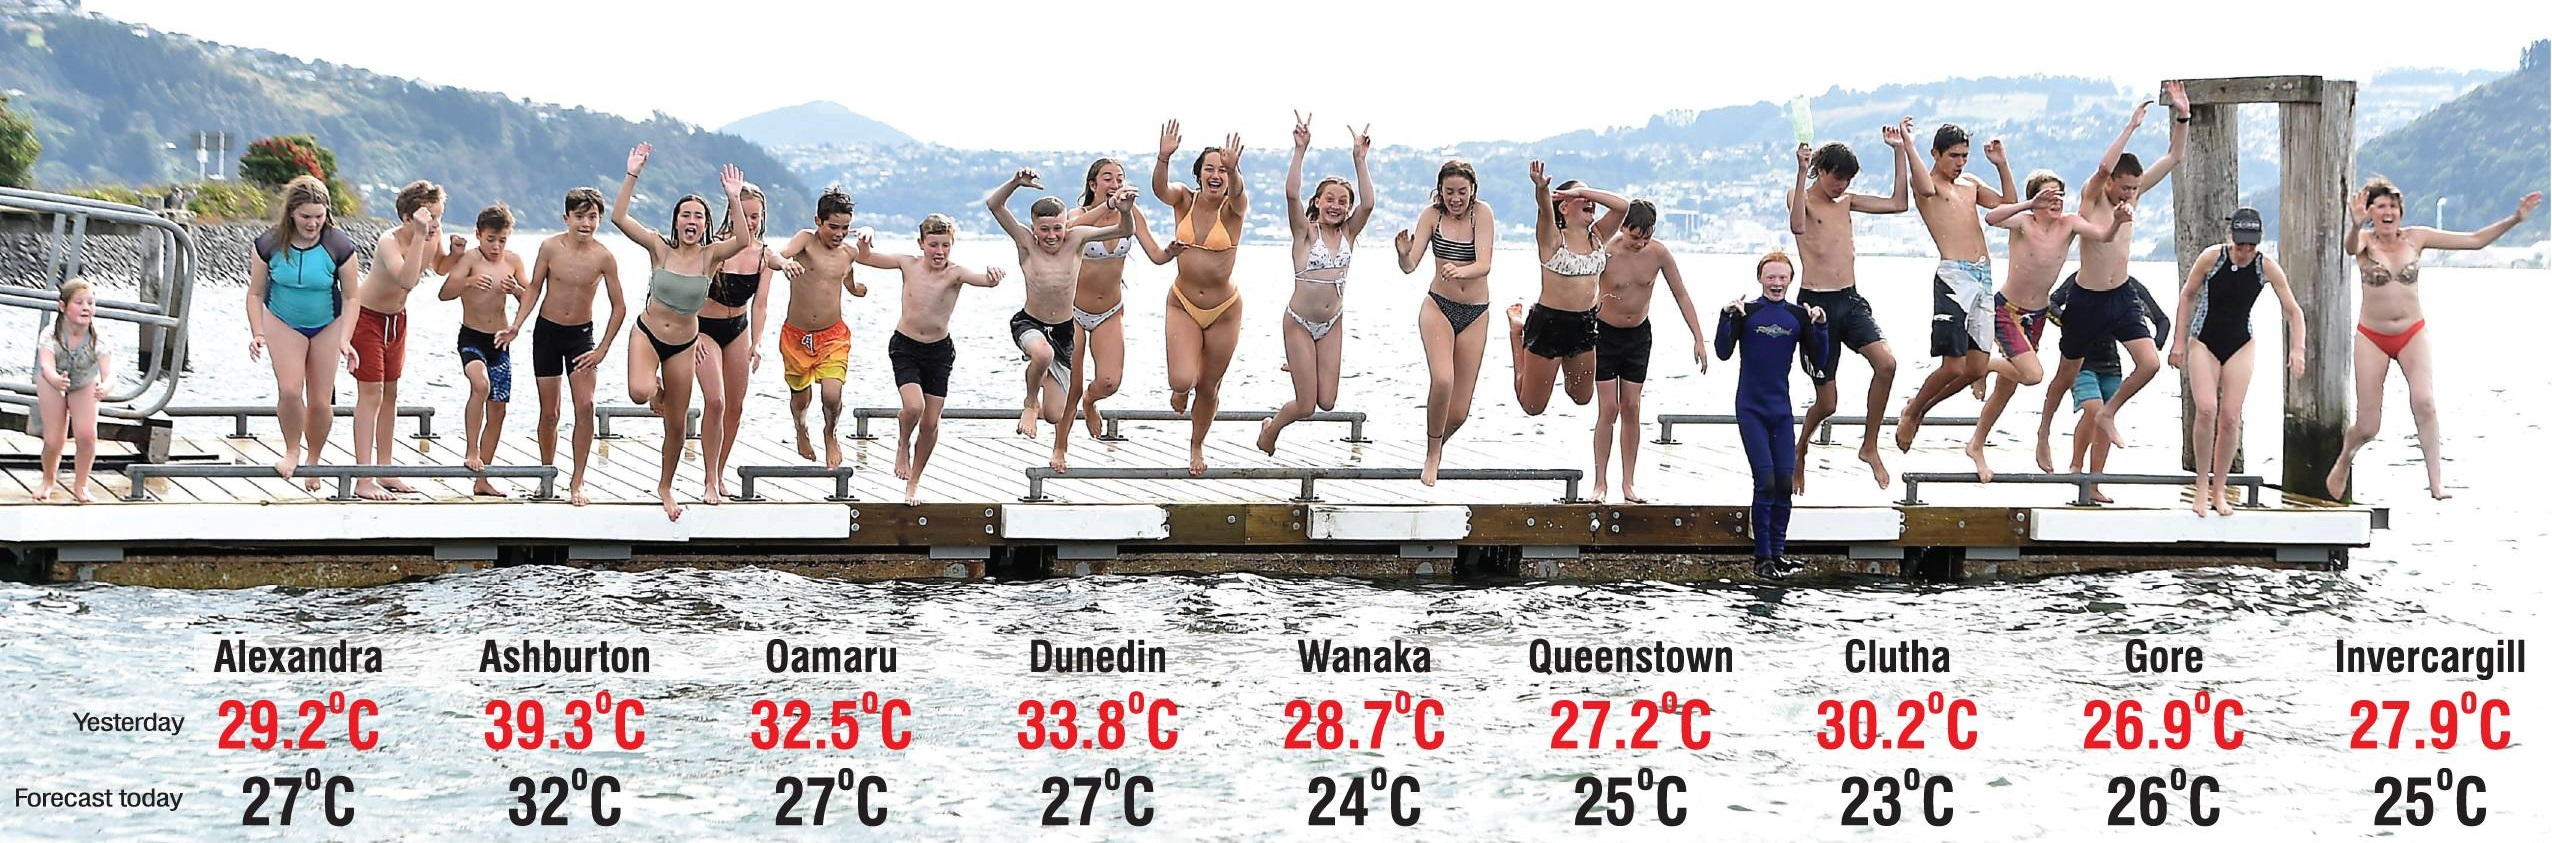 Swimmers jump off the wharf at Macandrew Bay yesterday as temperatures soared to nearly 34degC....